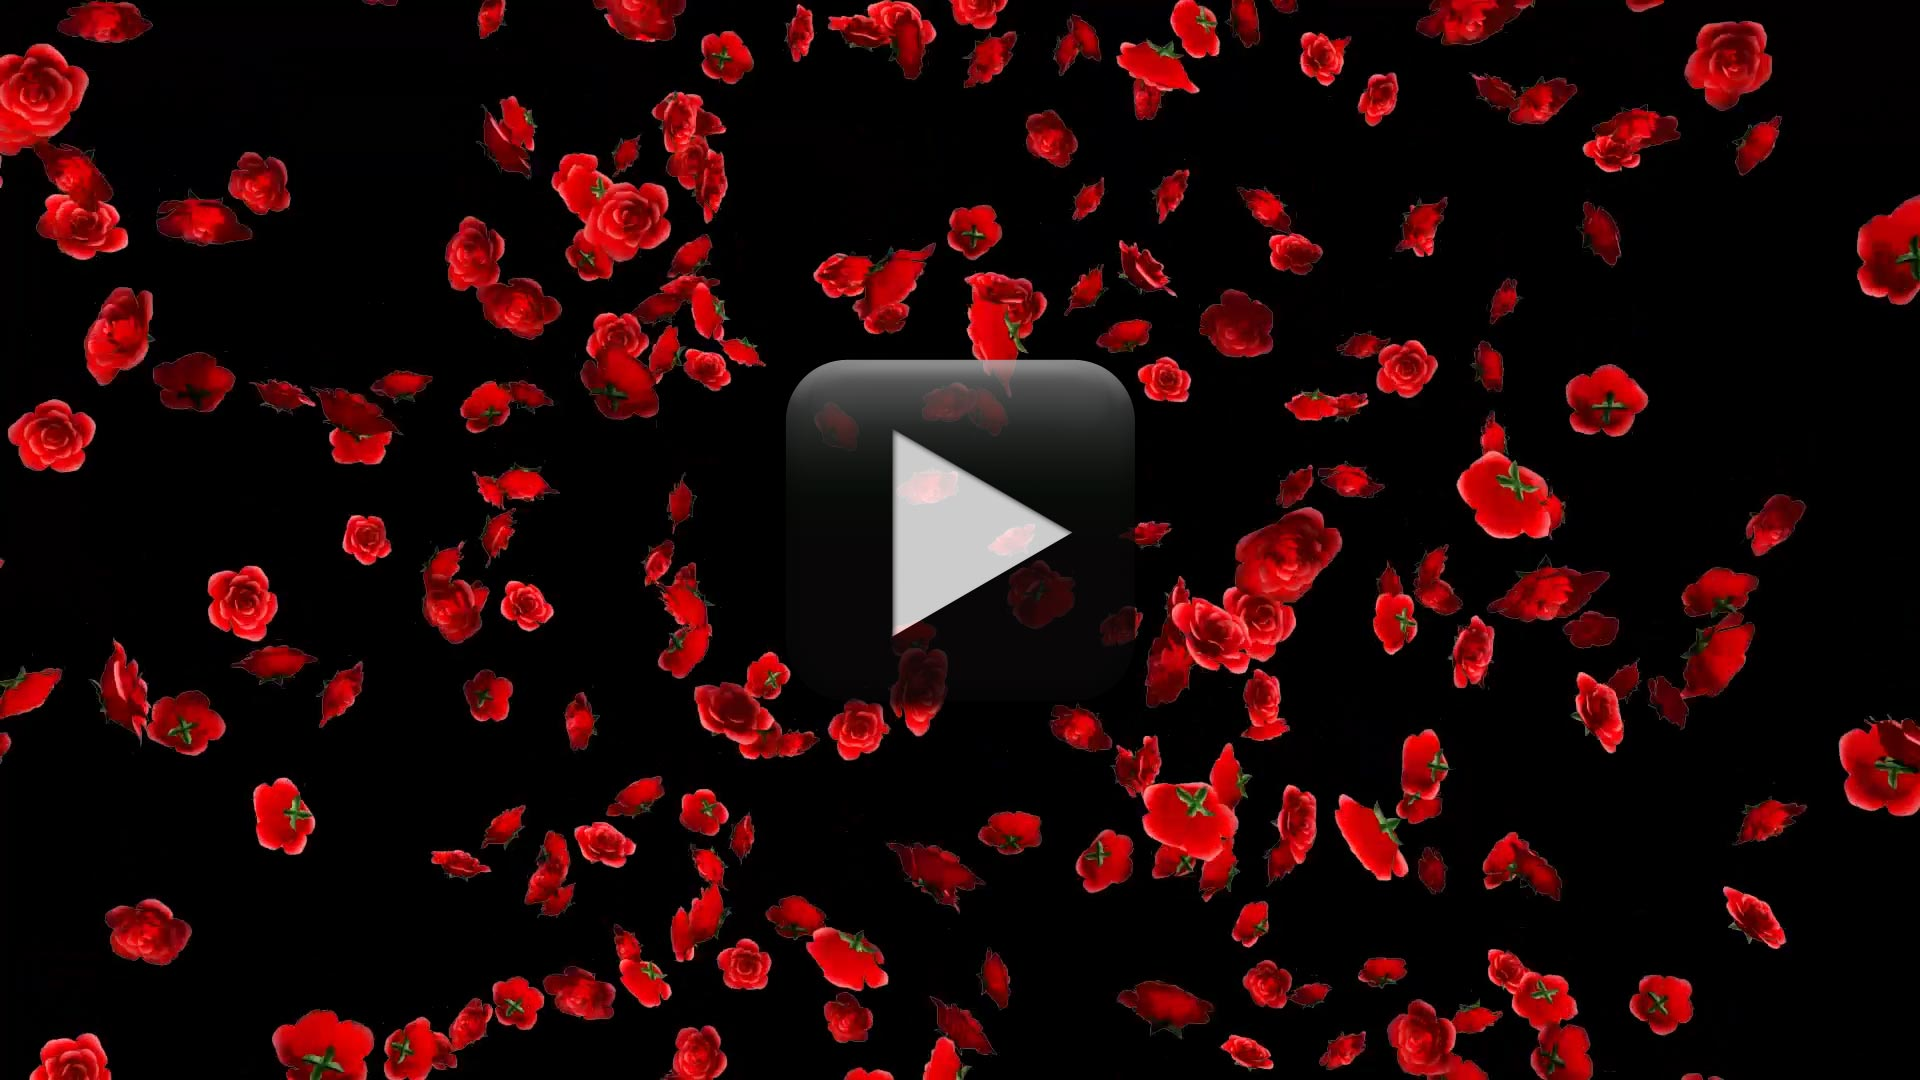 3d Falling Leaves Animated Wallpaper 90 Animated Flowers Falling Gifs Guirlandes Bordures